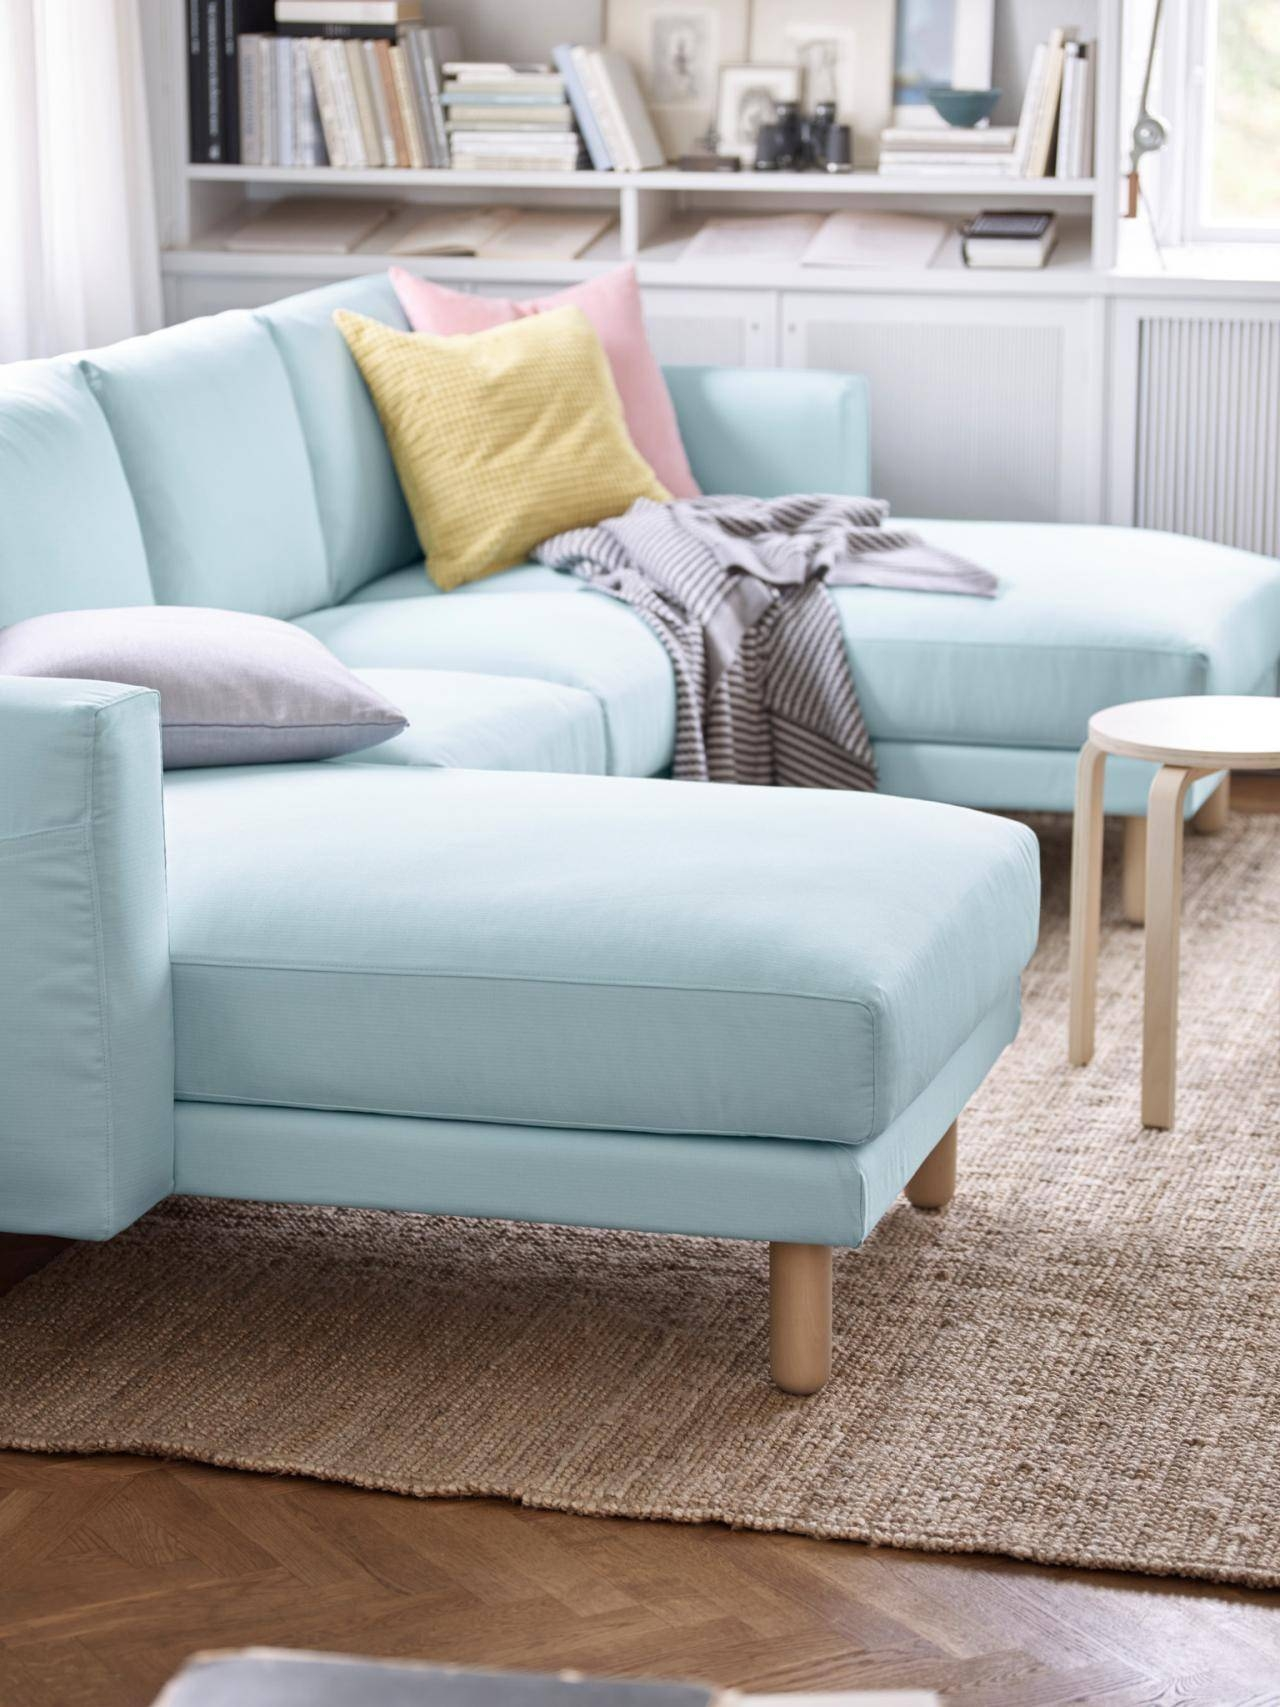 5 Apartment Sized Sofas That Are Lifesavers | Hgtv's Decorating With Tiny Sofas (Photo 22 of 30)